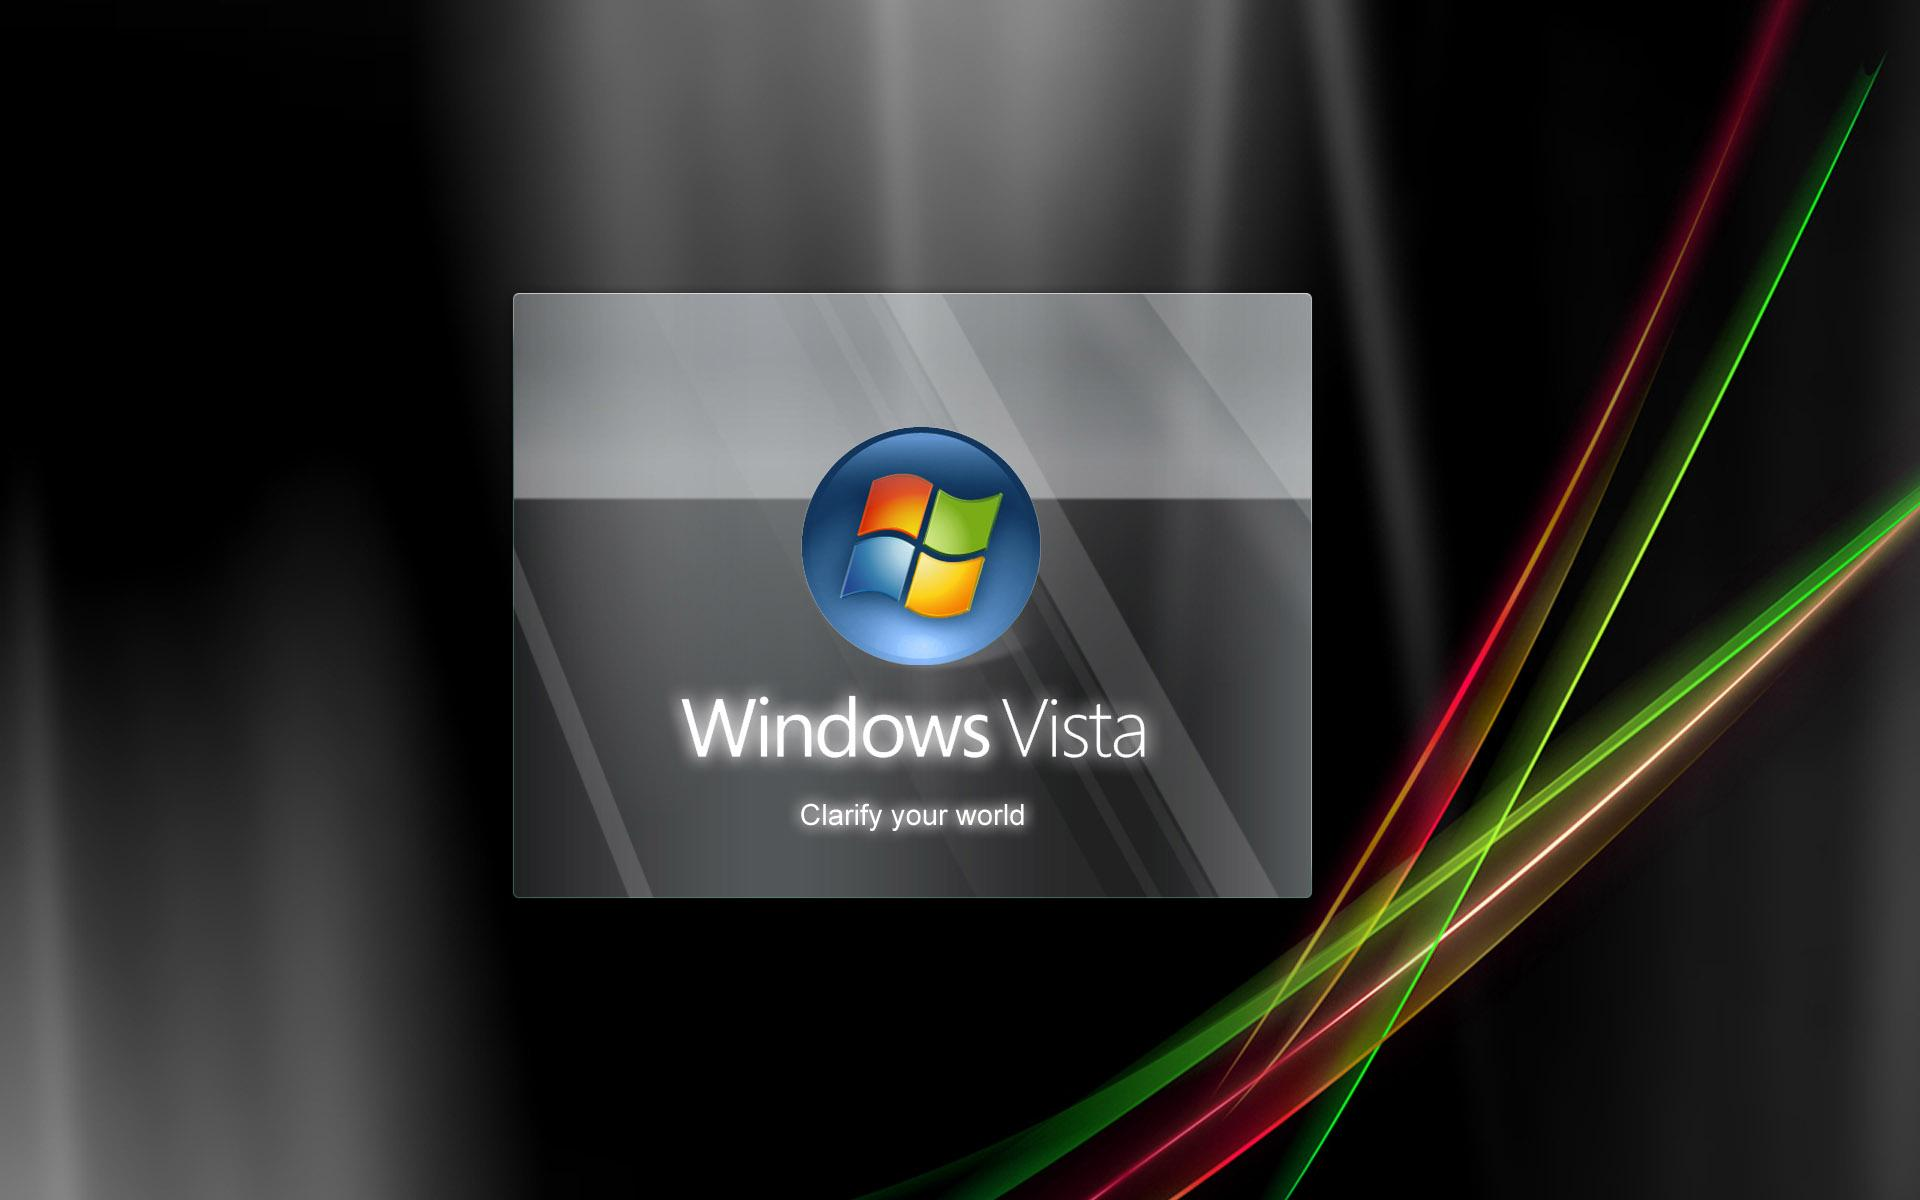 Обои Windows Vista (26) 1920x1200